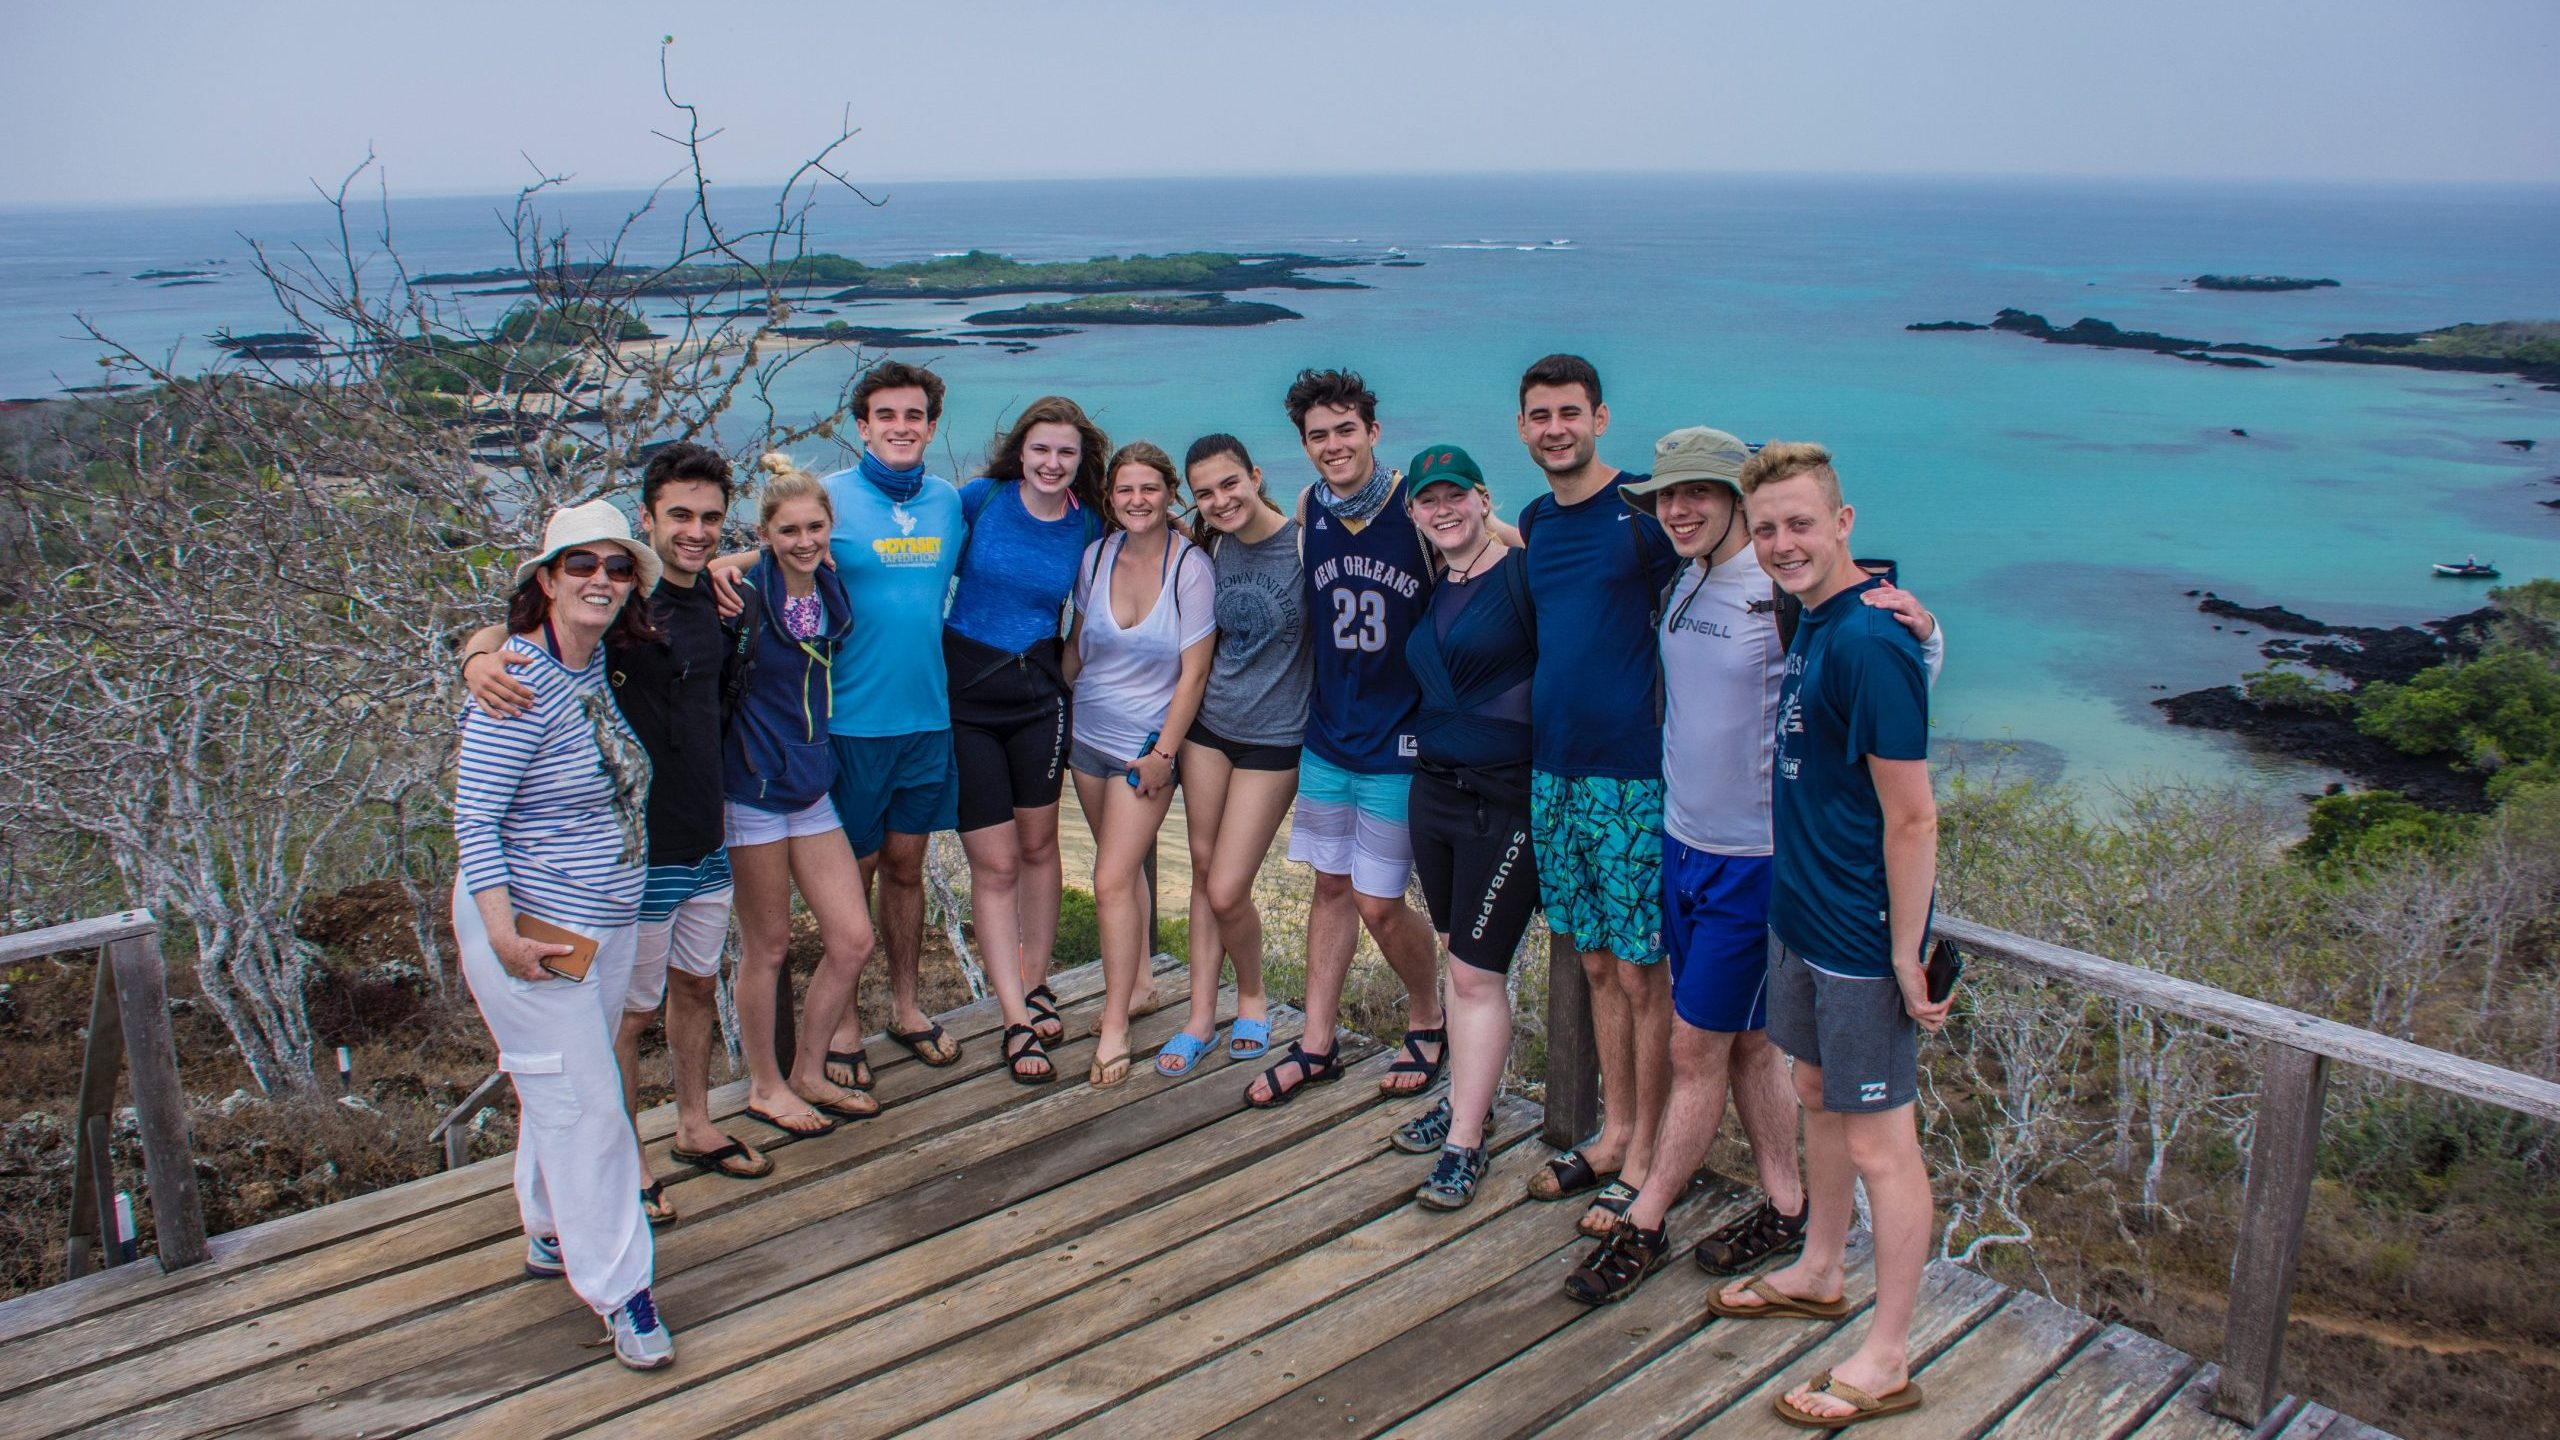 Britt is pictured with a group of fellow students. The are standing on an overlook with the sea in the background.